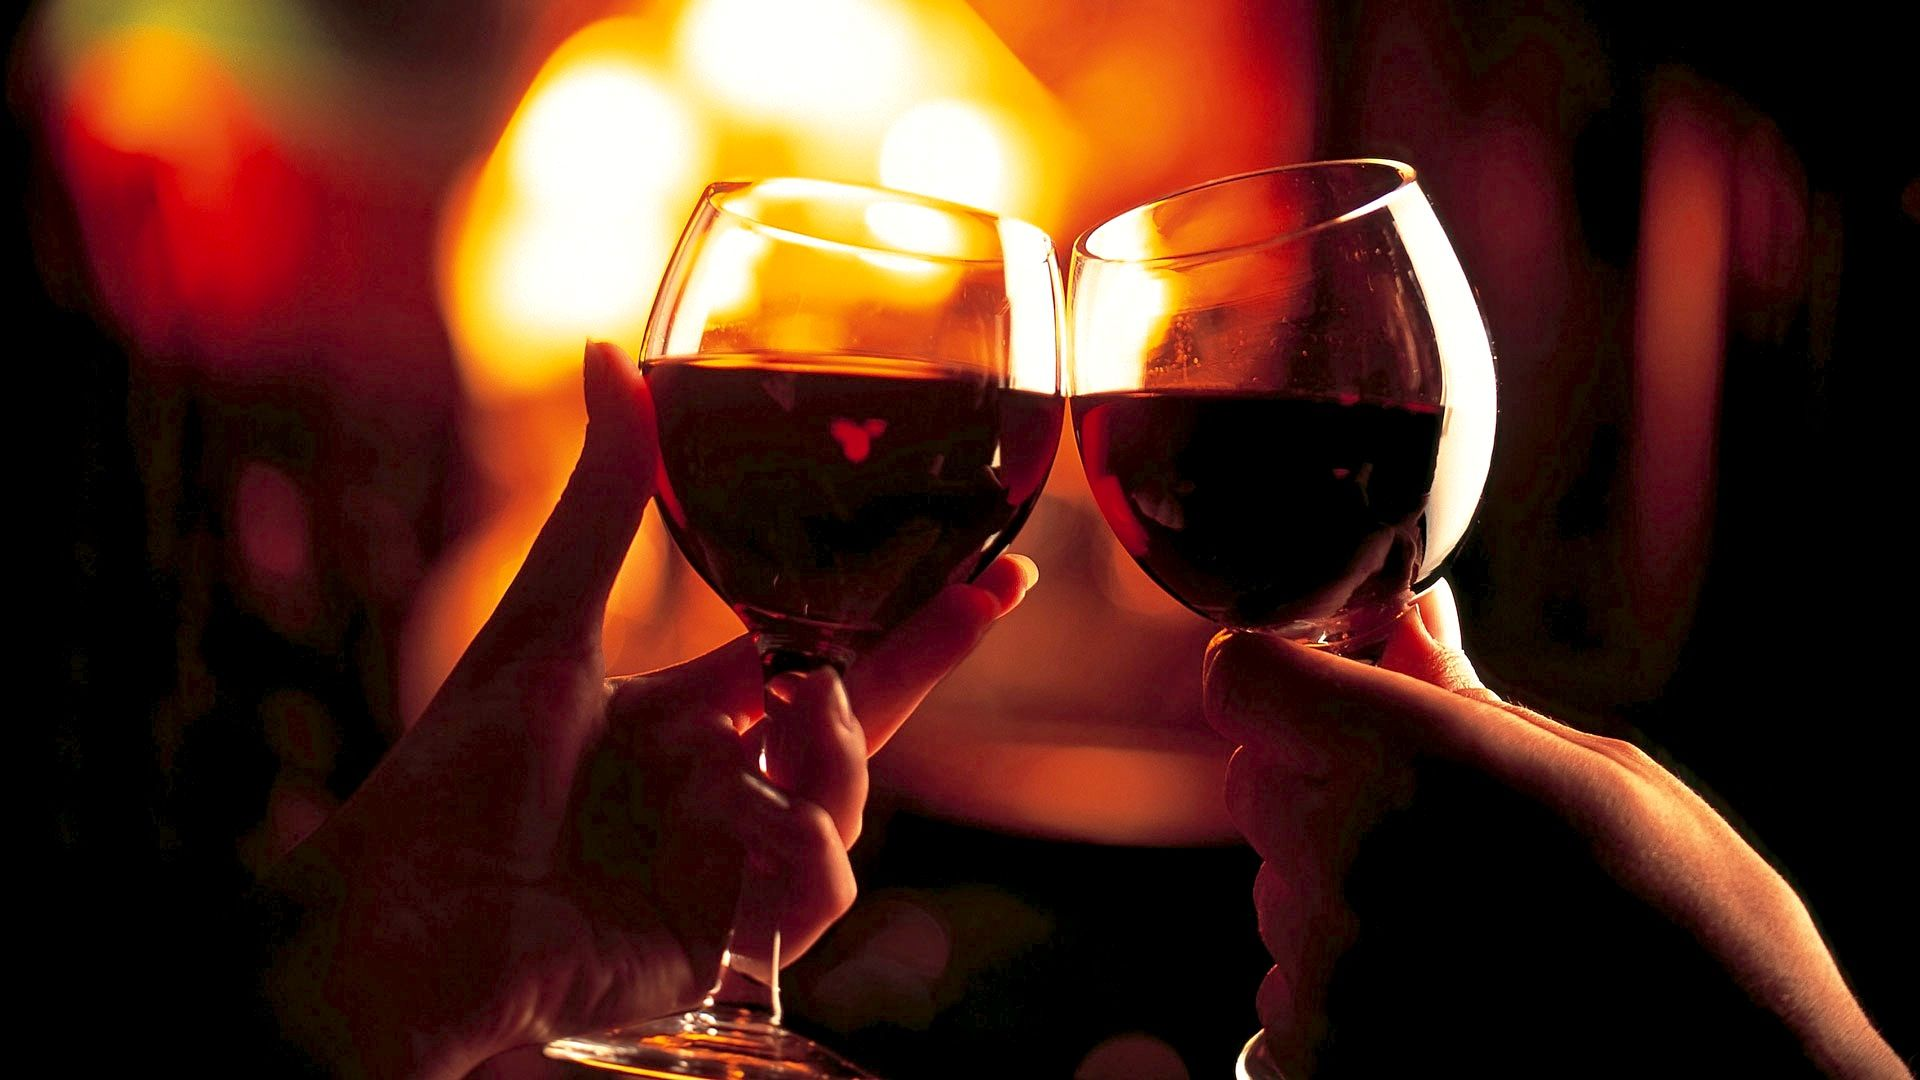 Brother S Wine And Liquor The Store Also Offers Exclusive Rates On Most Of It Best Selling Products Http Www Brotherswineandli Wine Red Wine Wine Tasting